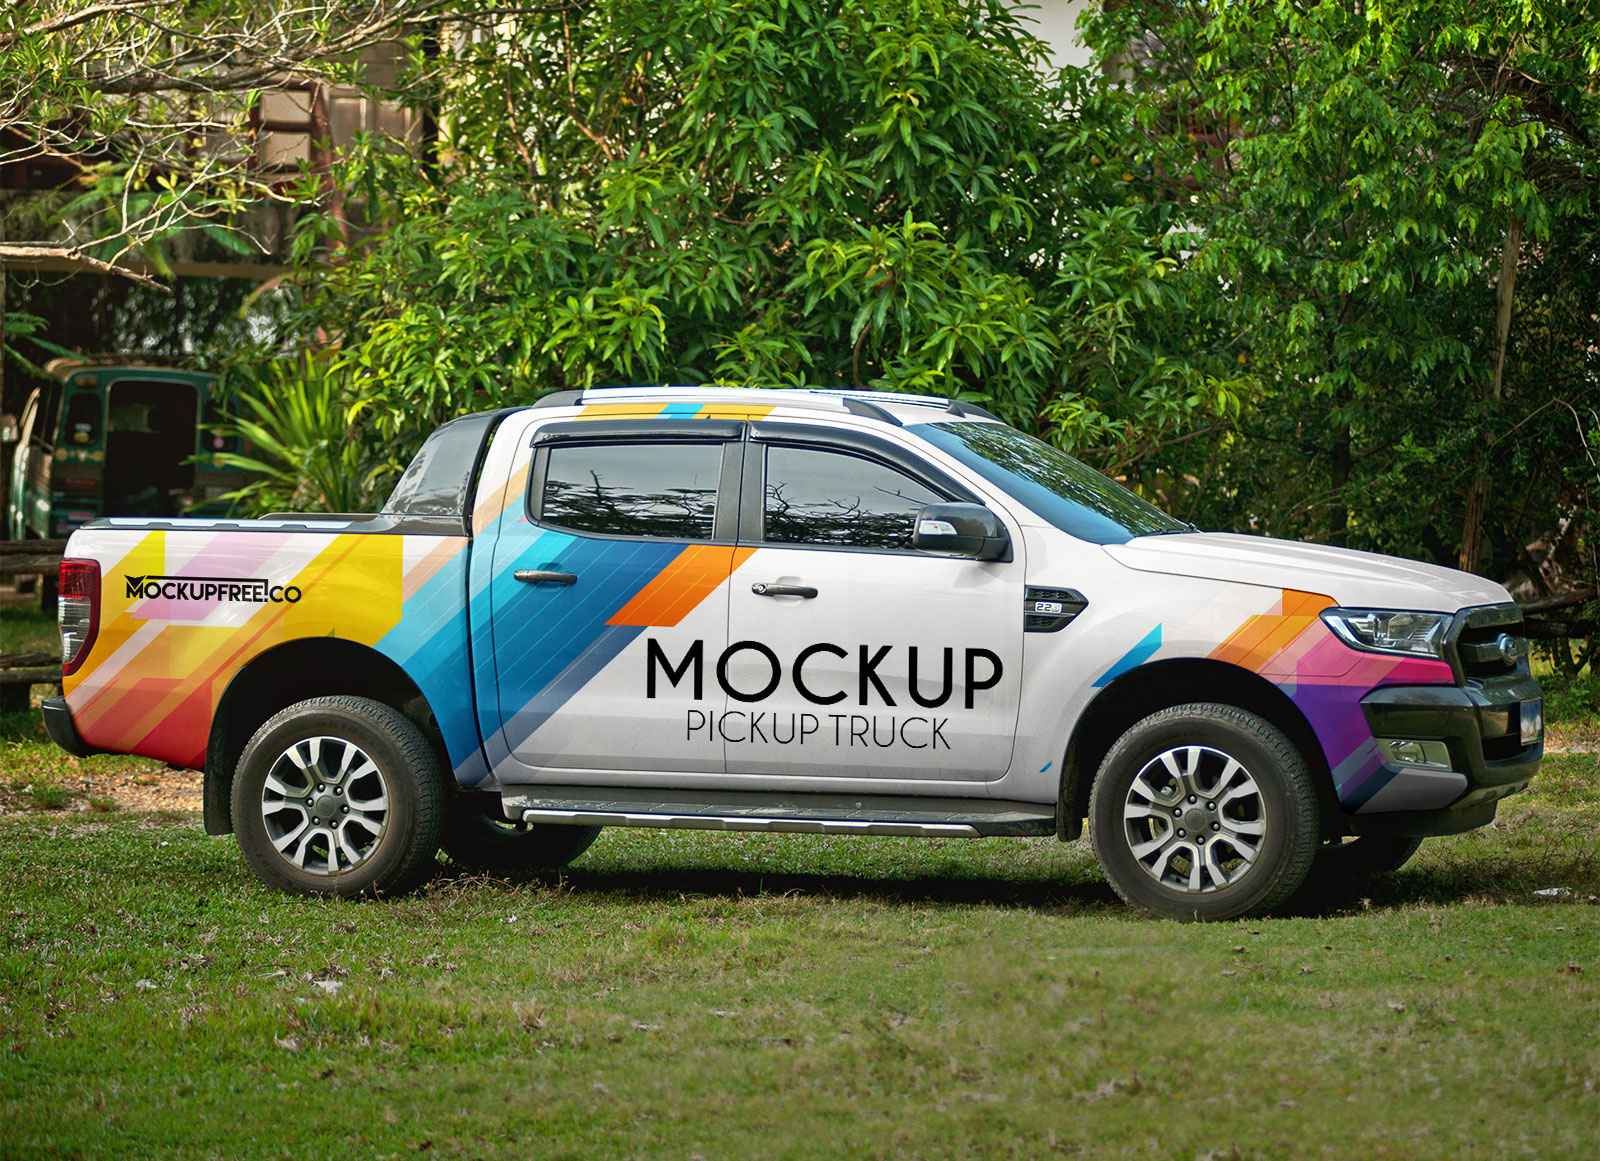 Free-Vehicle-Branding-Pickup-Truck-Mockup-PSD